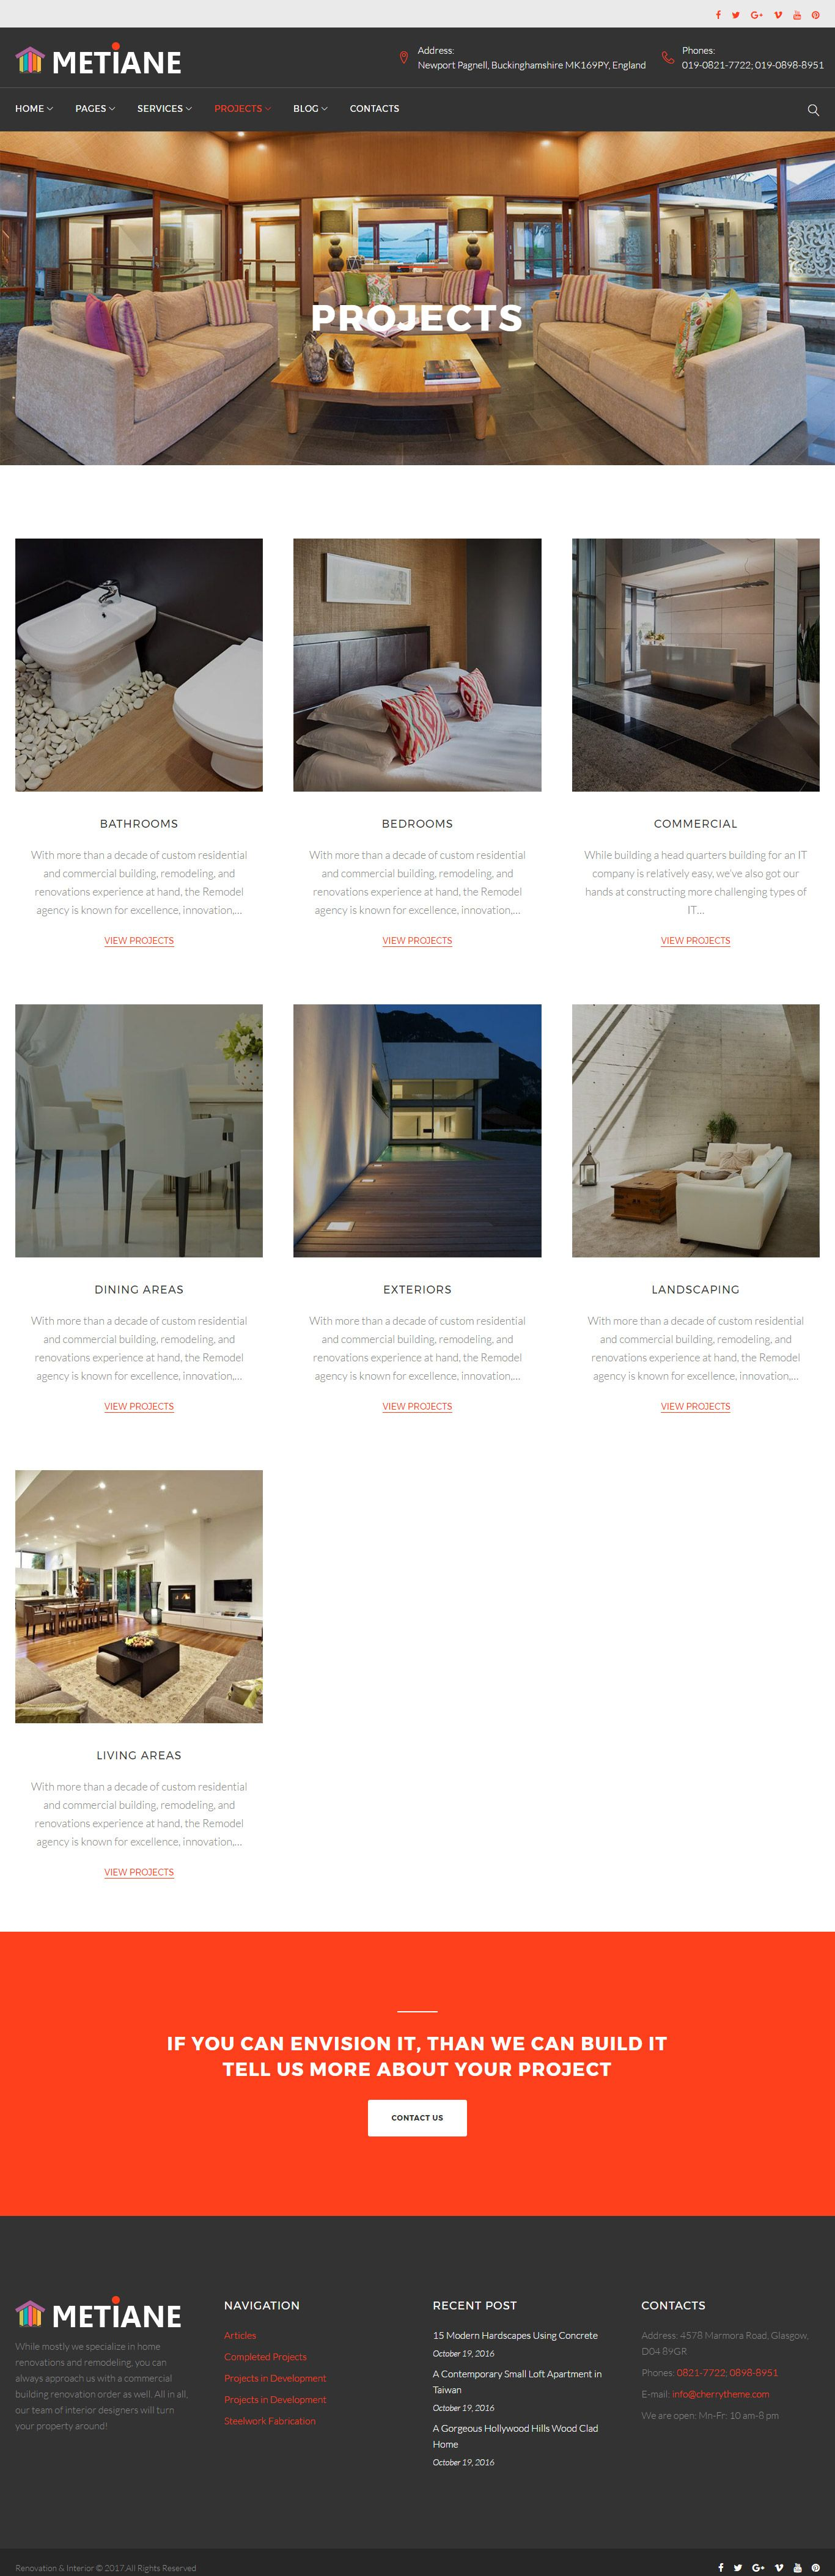 Metiane - Interior Design Wordpress Theme Screenshot 5